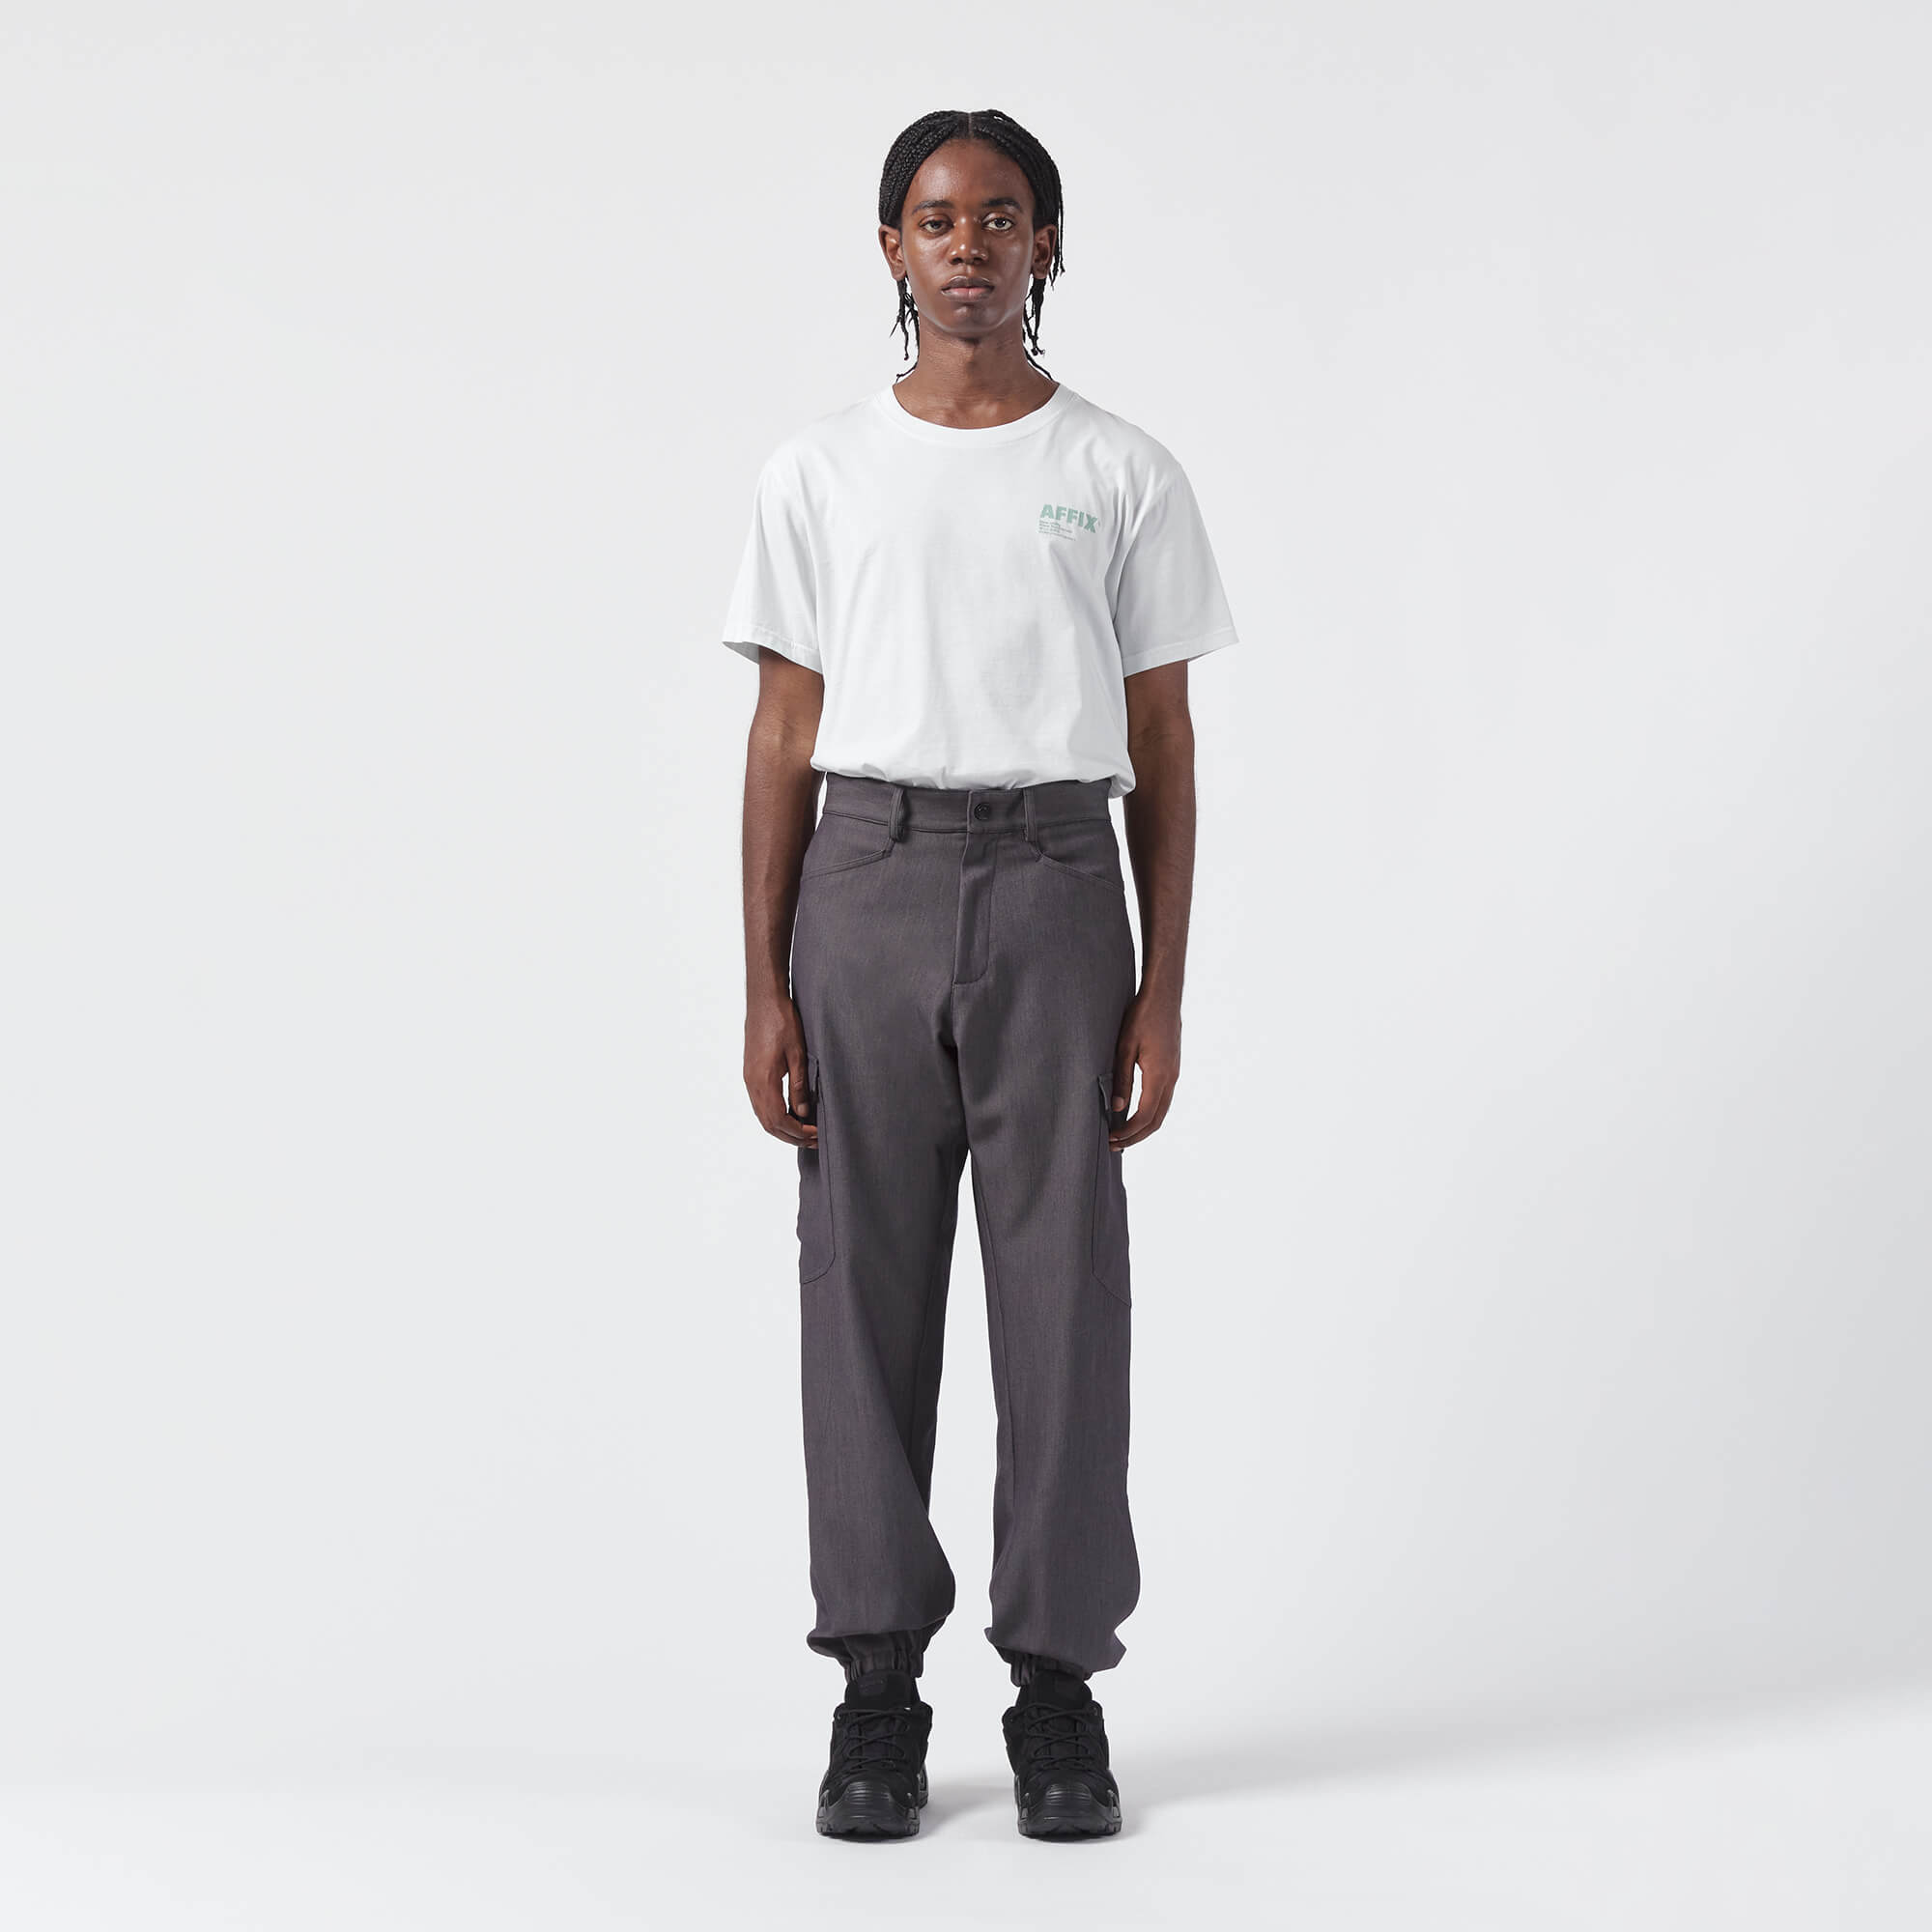 AFFIX WORKS AFFXWRKS MOBILISATION PANT DARK GREY